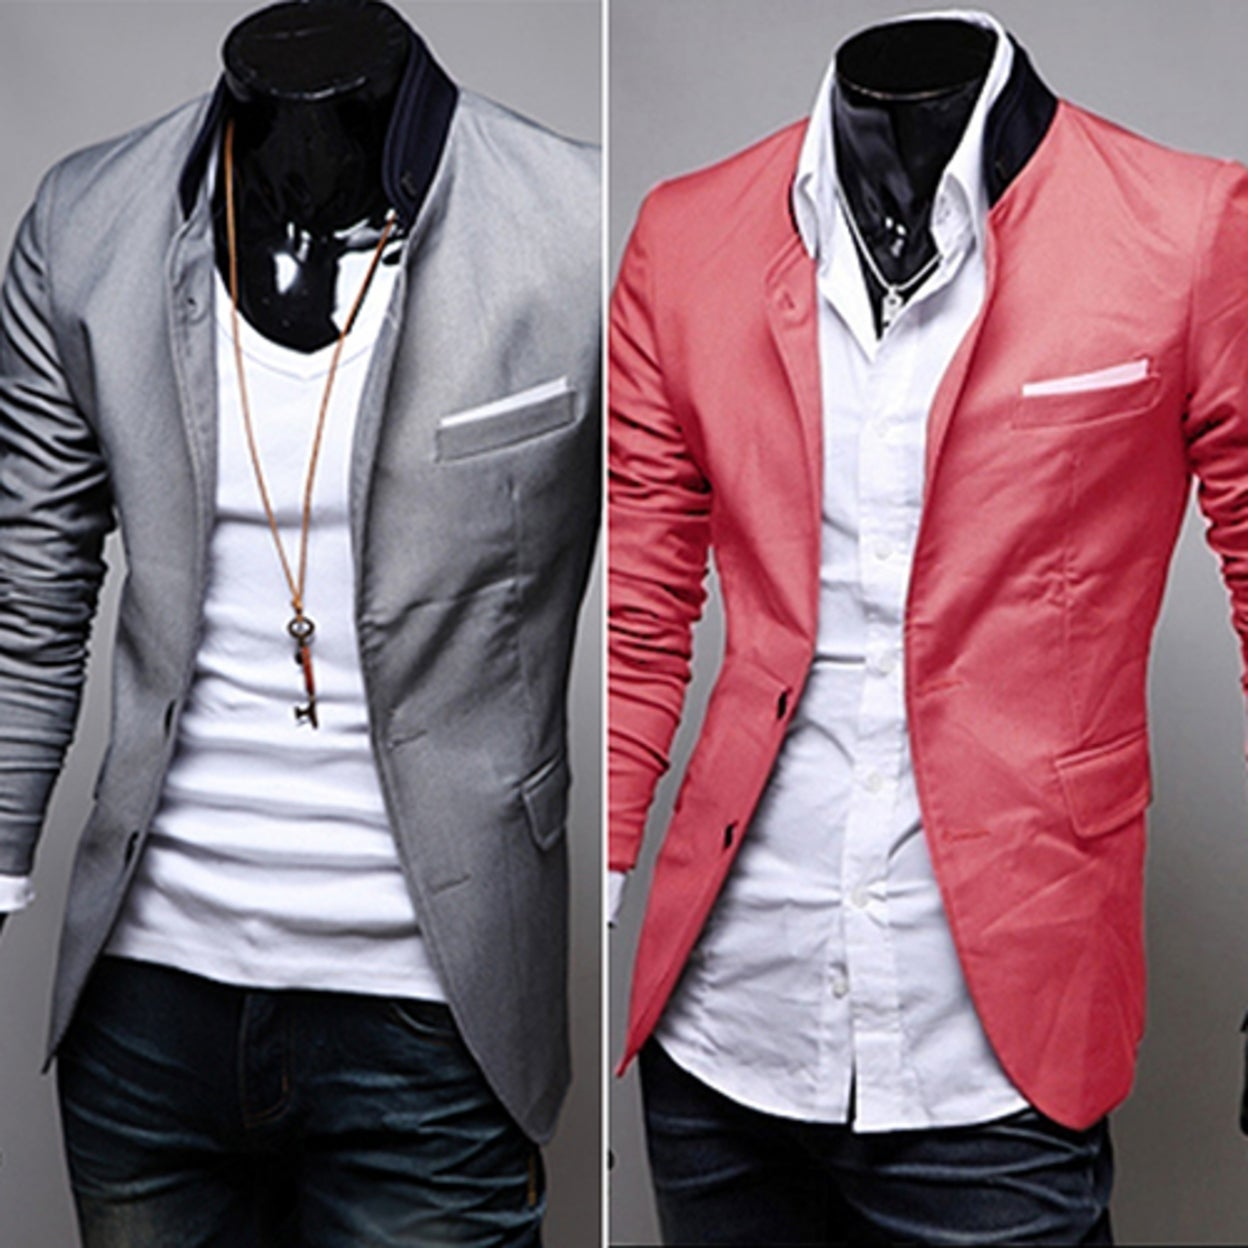 2666014d55 Shop Men s British Style Office Casual Two Buttons Pocket Slim Fit Suit  Coat Jacket - Free Shipping On Orders Over  45 - Overstock - 23031432